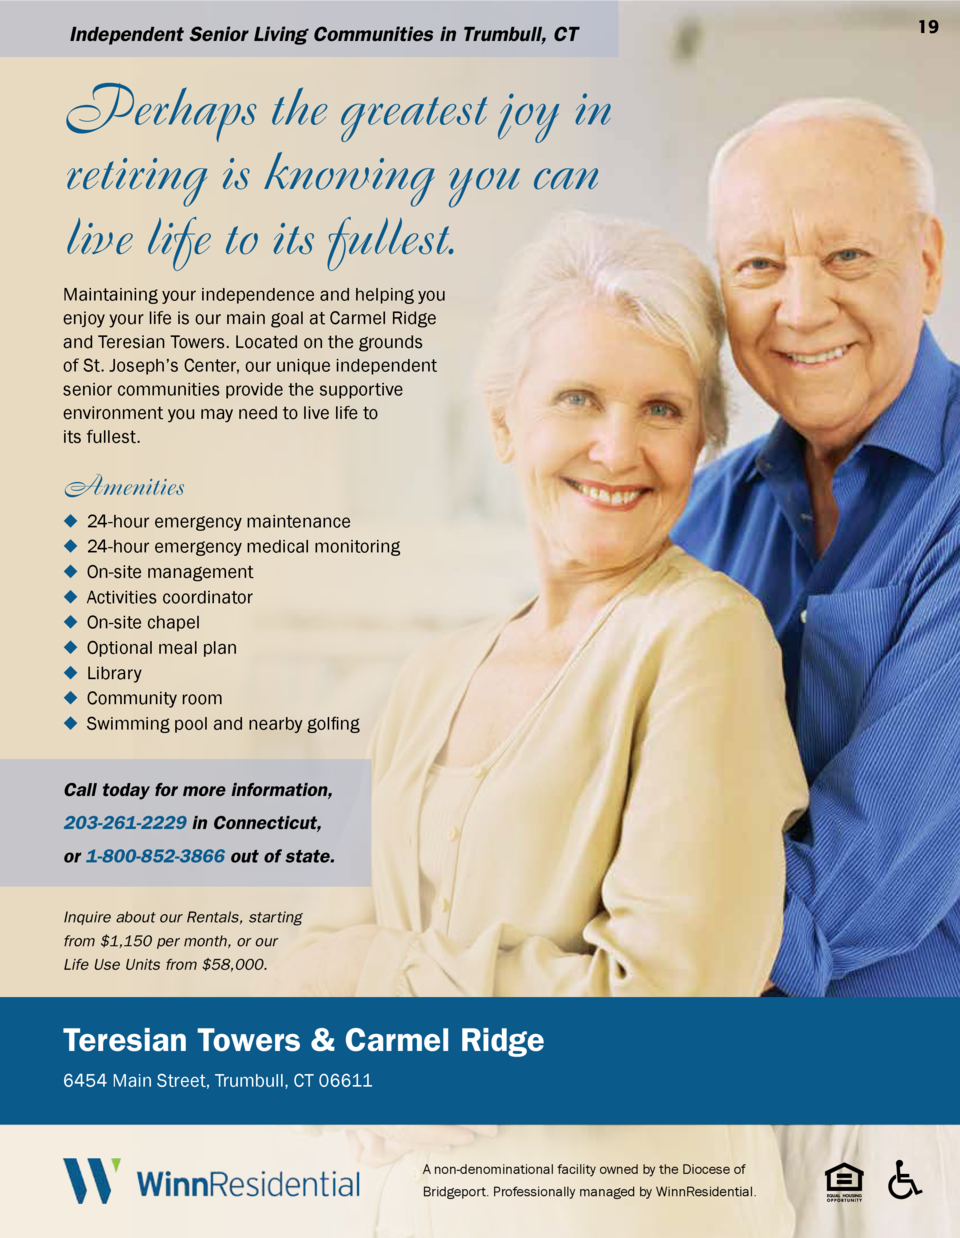 Independent Senior Living Communities in Trumbull, CT  Perhaps the greatest joy in retiring is knowing you can live life t...